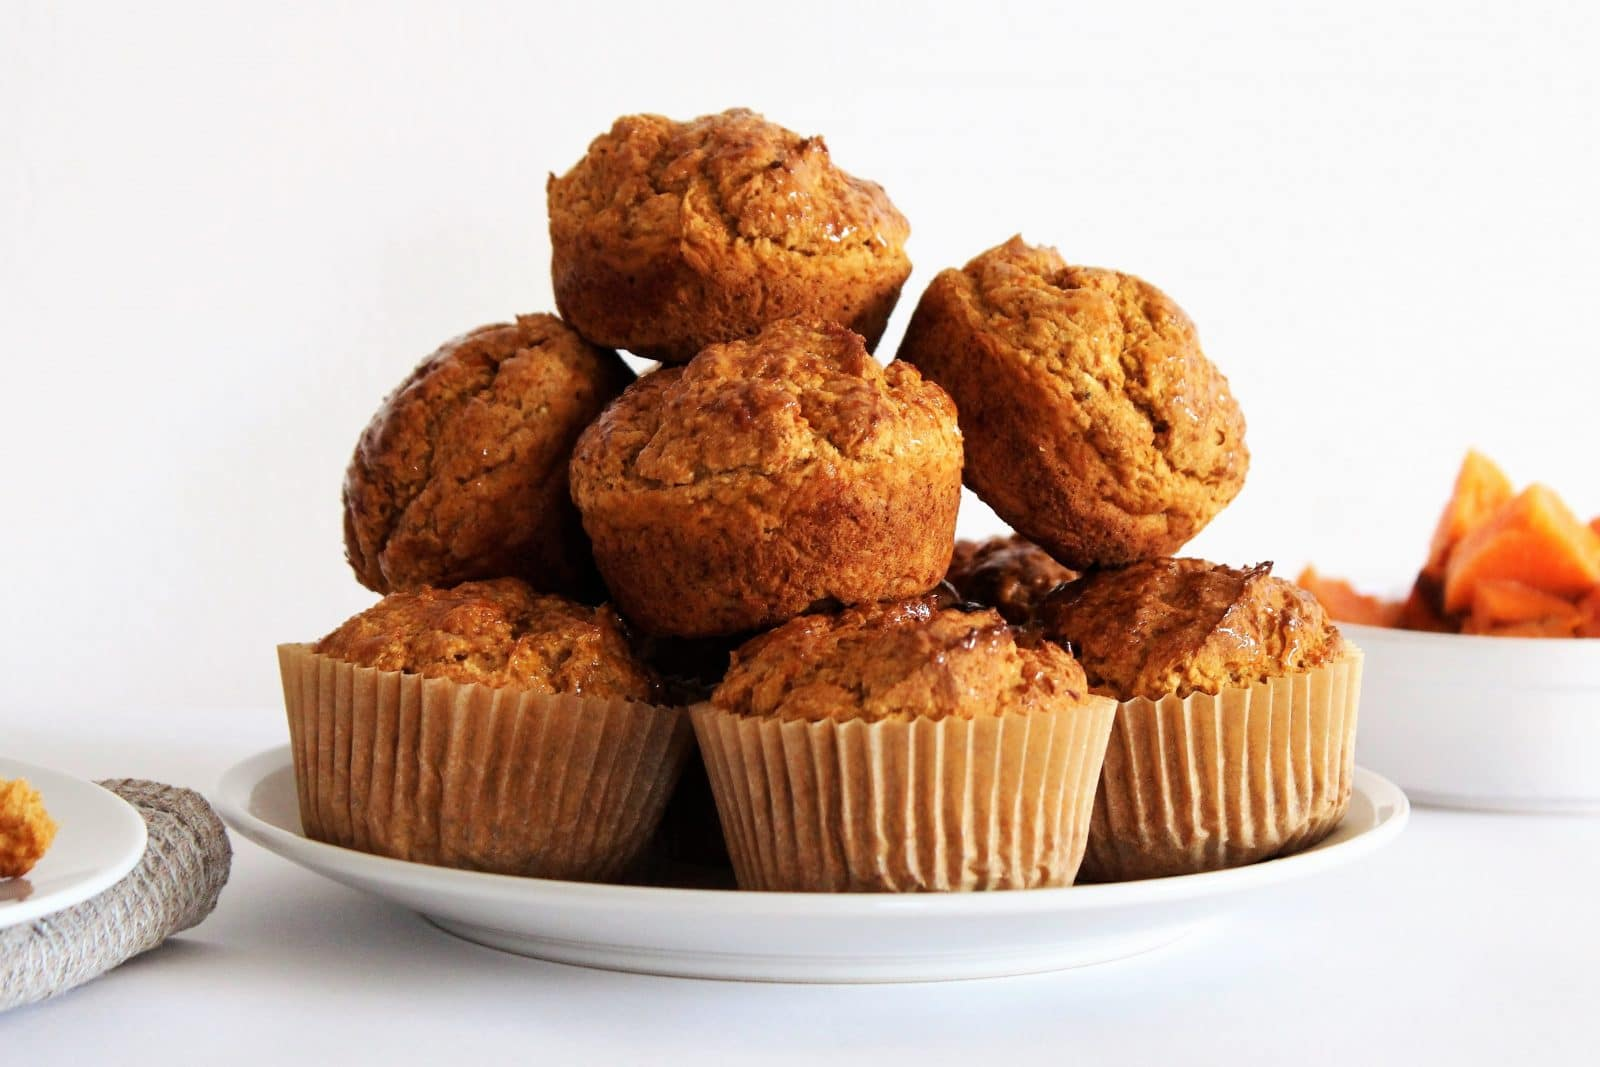 Muffins à la Patate Douce, Orange & Épices